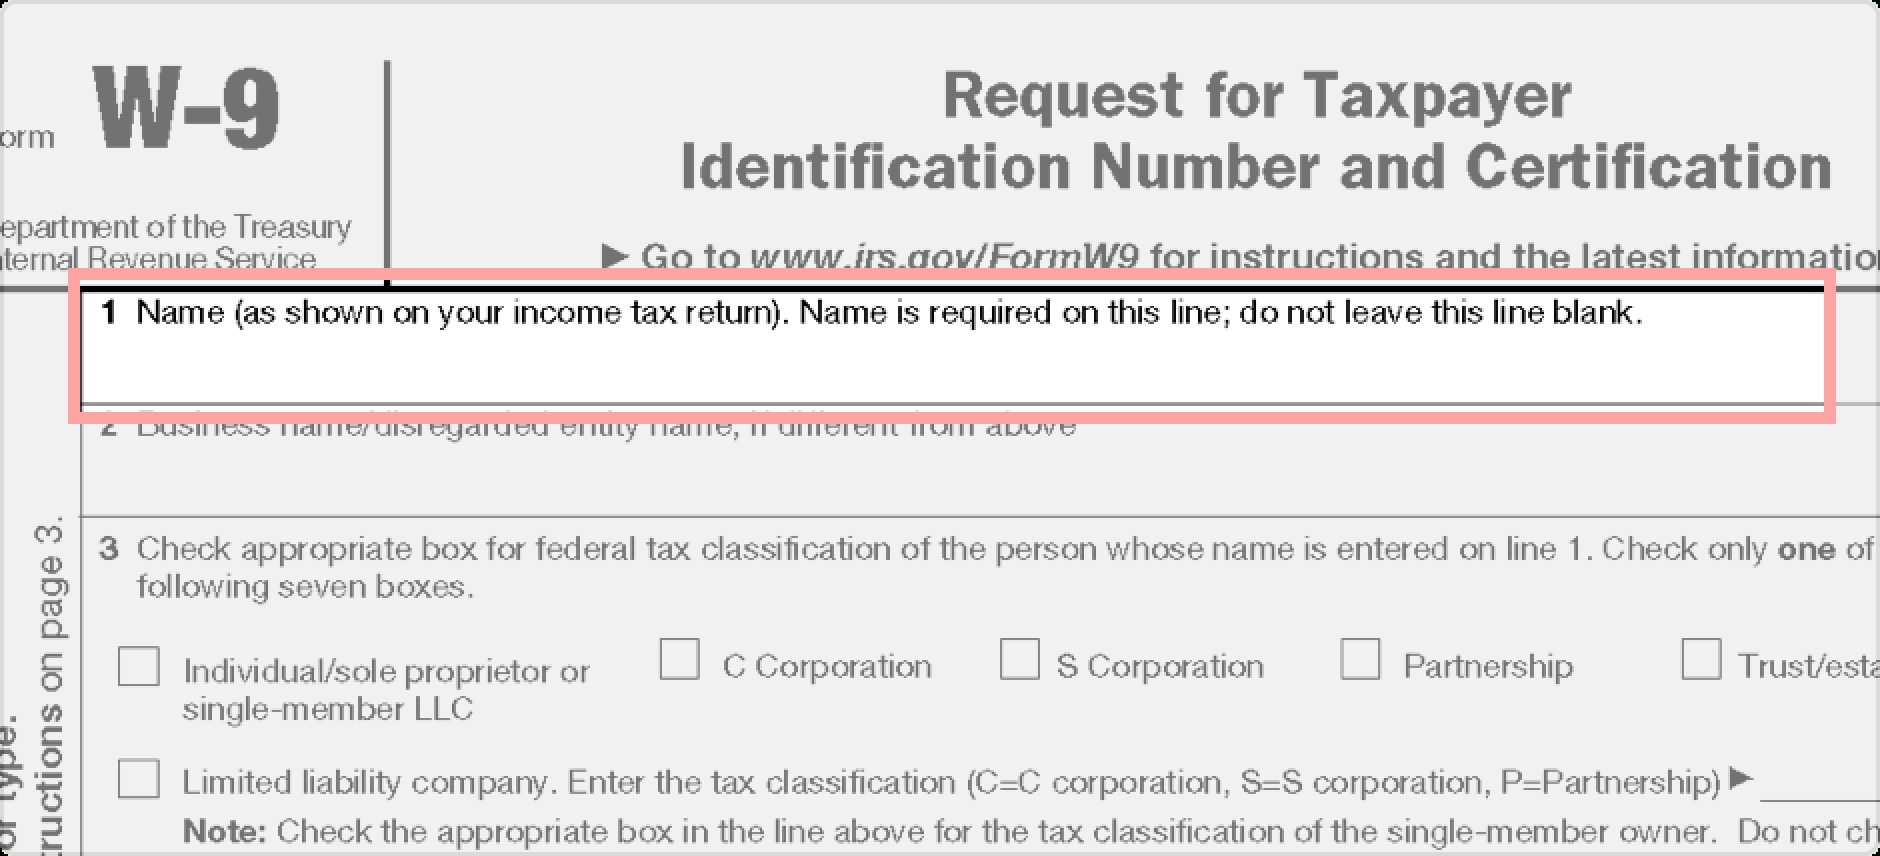 W-9 Form: Fillable, Printable, Download Free. 2020 Instructions-Free Printable I 9 Form 2021